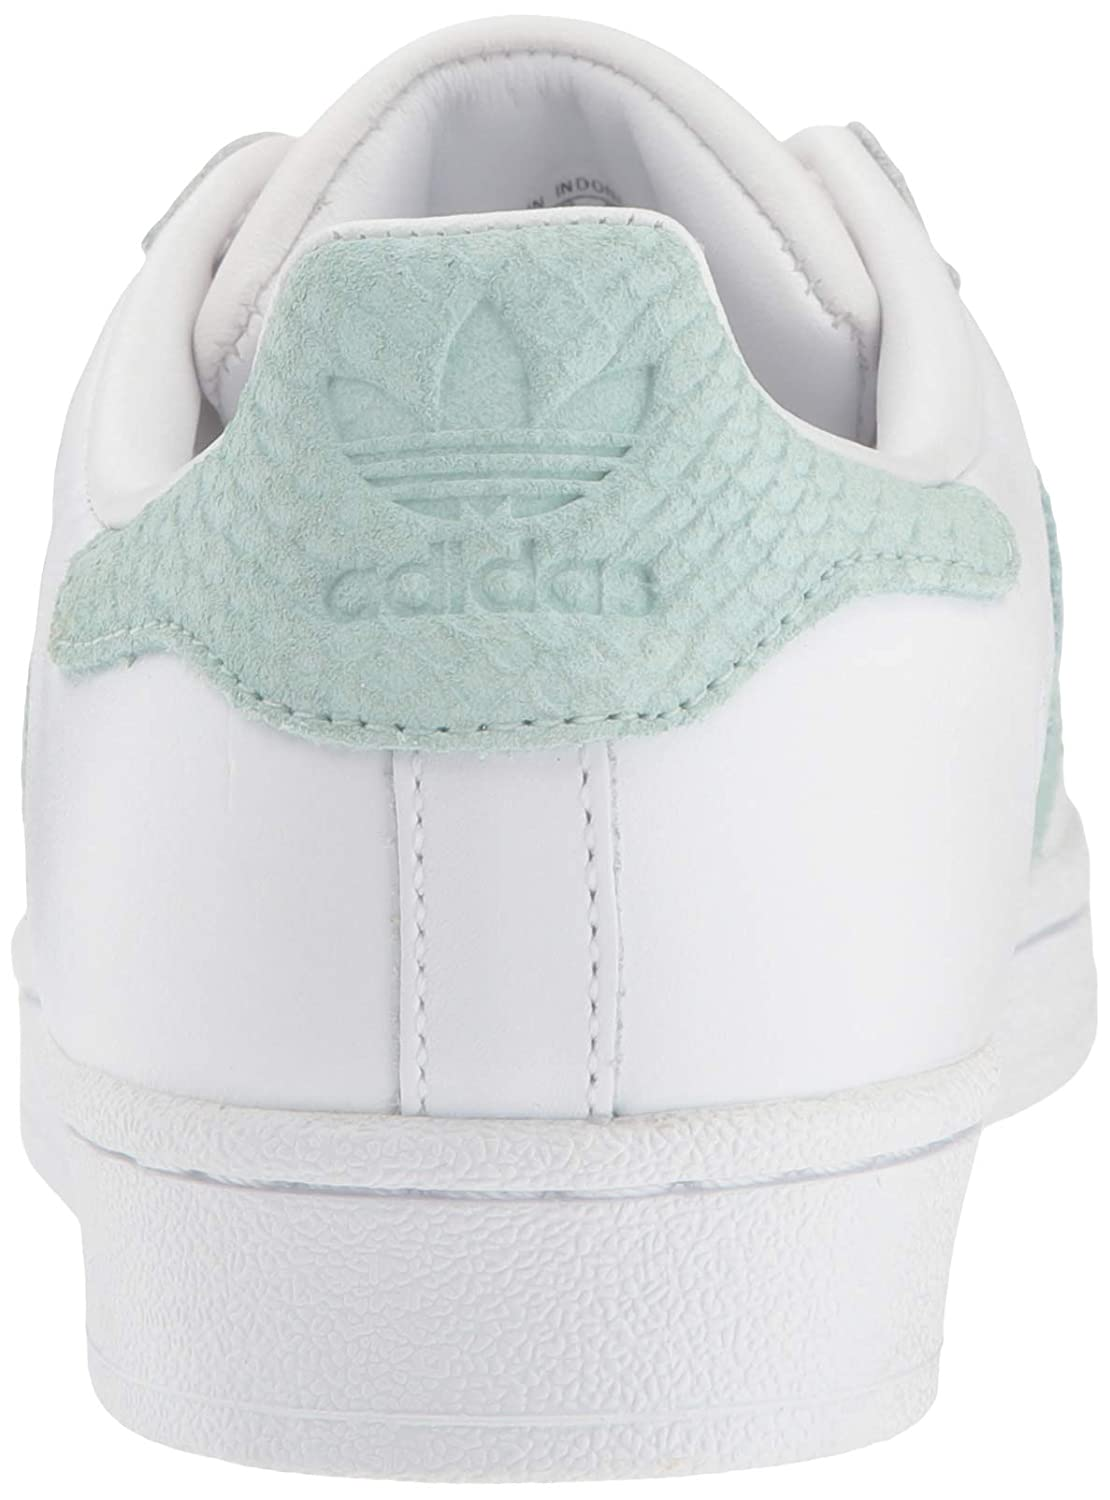 Adidas-Superstar-Women-039-s-Fashion-Casual-Sneakers-Athletic-Shoes-Originals thumbnail 12